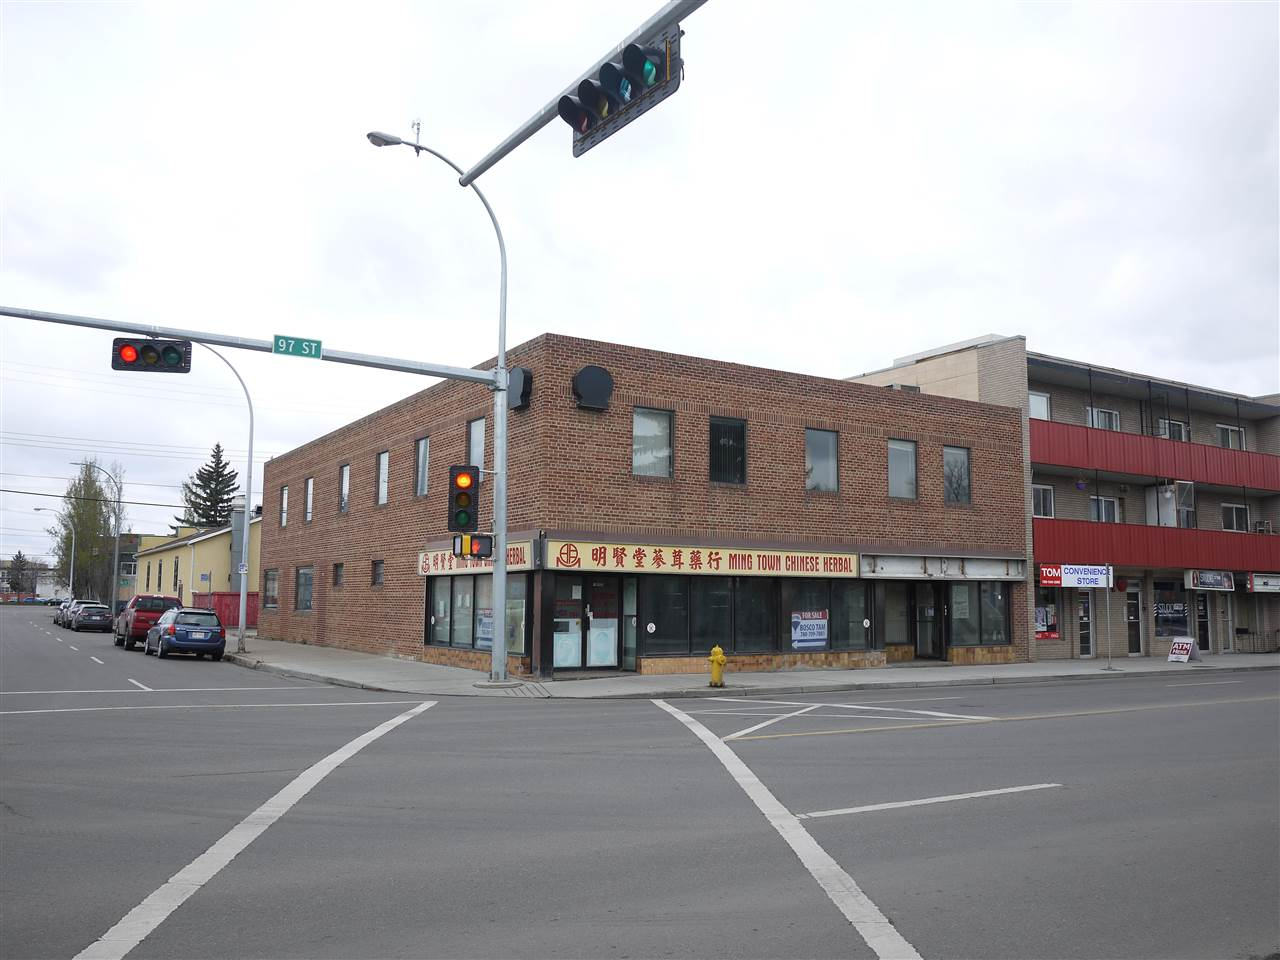 Retail Property for Sale, MLS® # E4154518